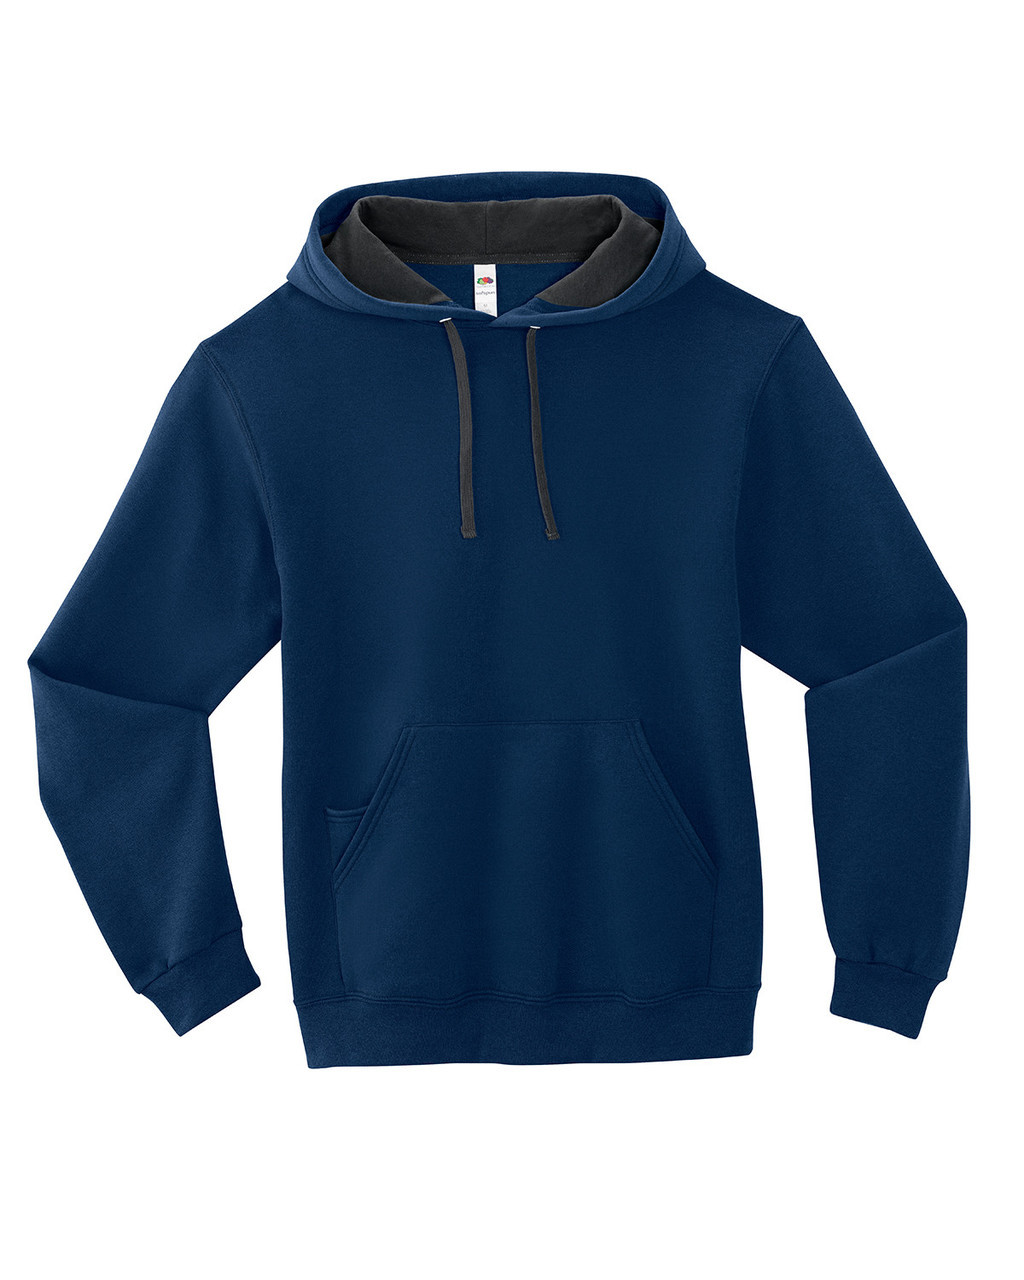 Navy - SF76R Fruit of the Loom Softspun Hooded Sweatshirt | Blankclothing.ca